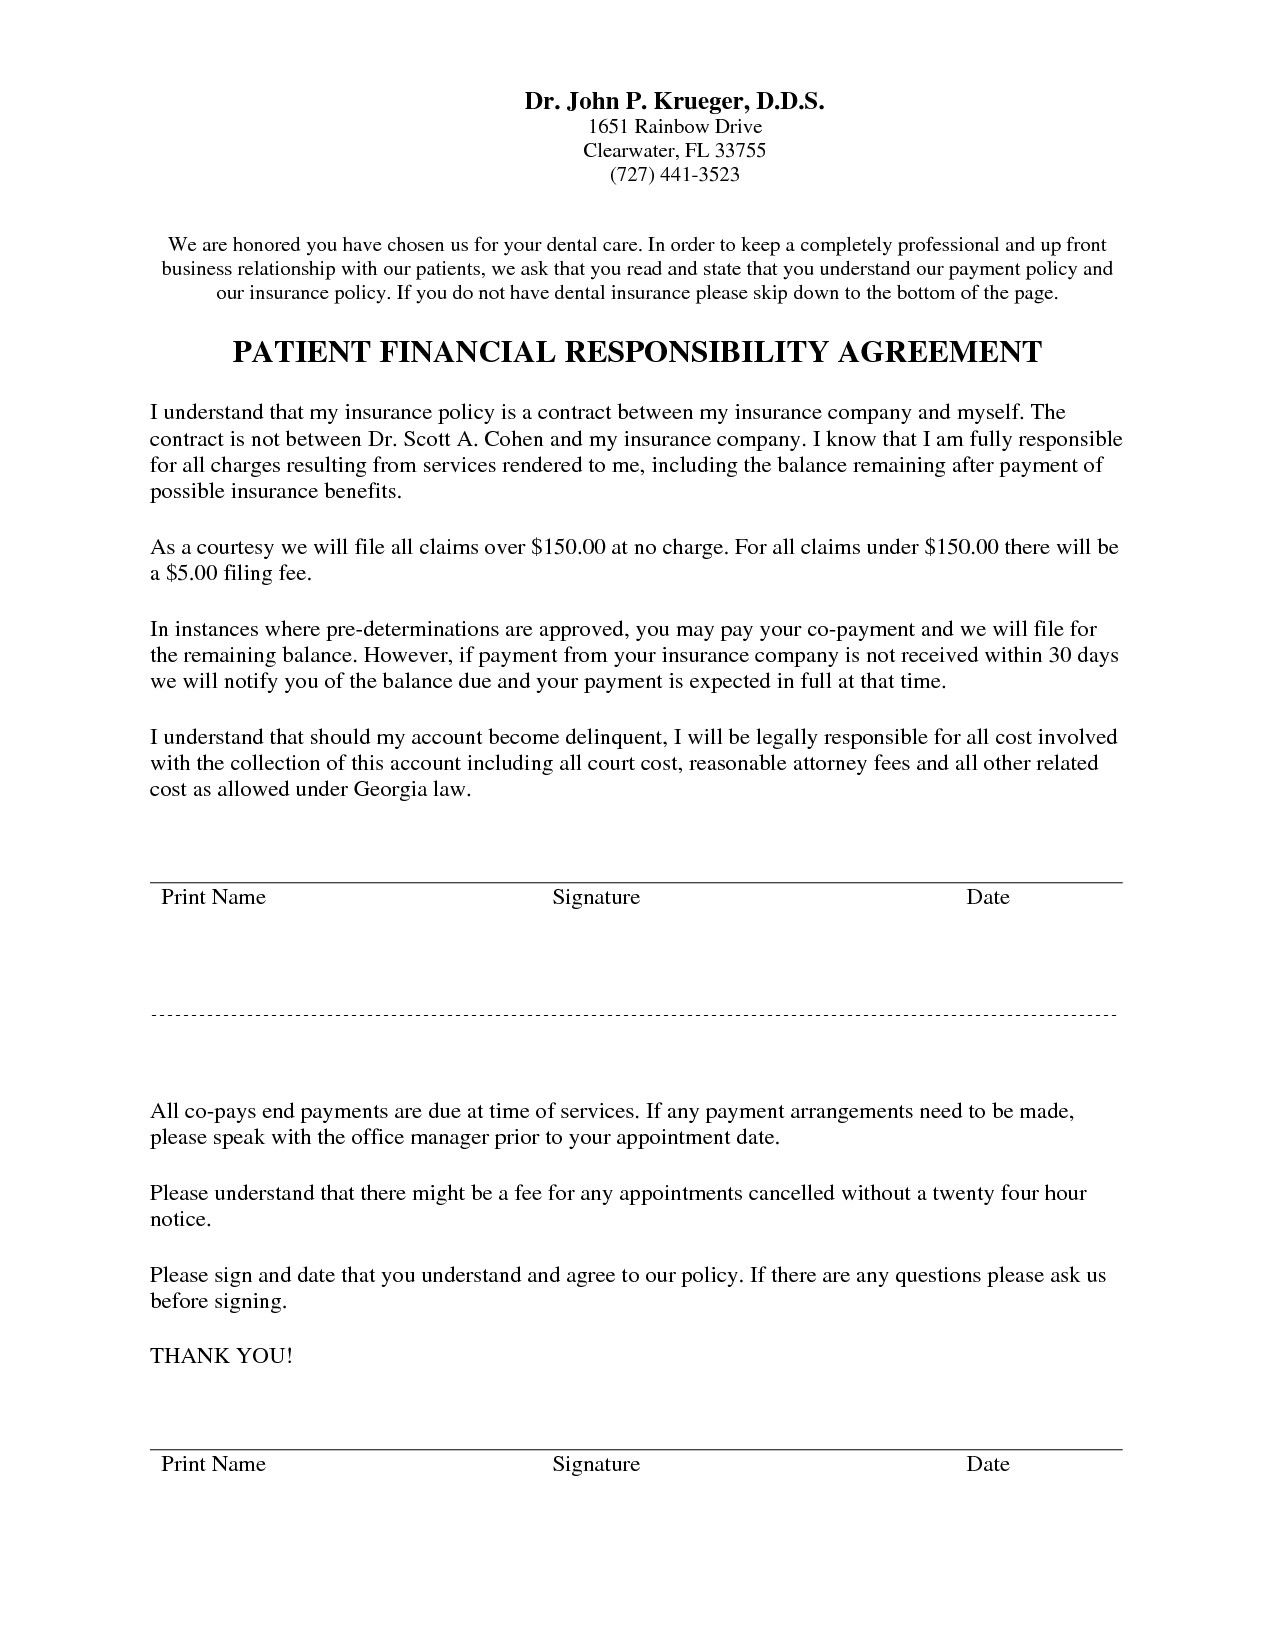 Dental Payment Plan Agreement Template Awesome Dental Payment Plan Agreement Ideal 10 Best Financial How To Plan Dental Template Design